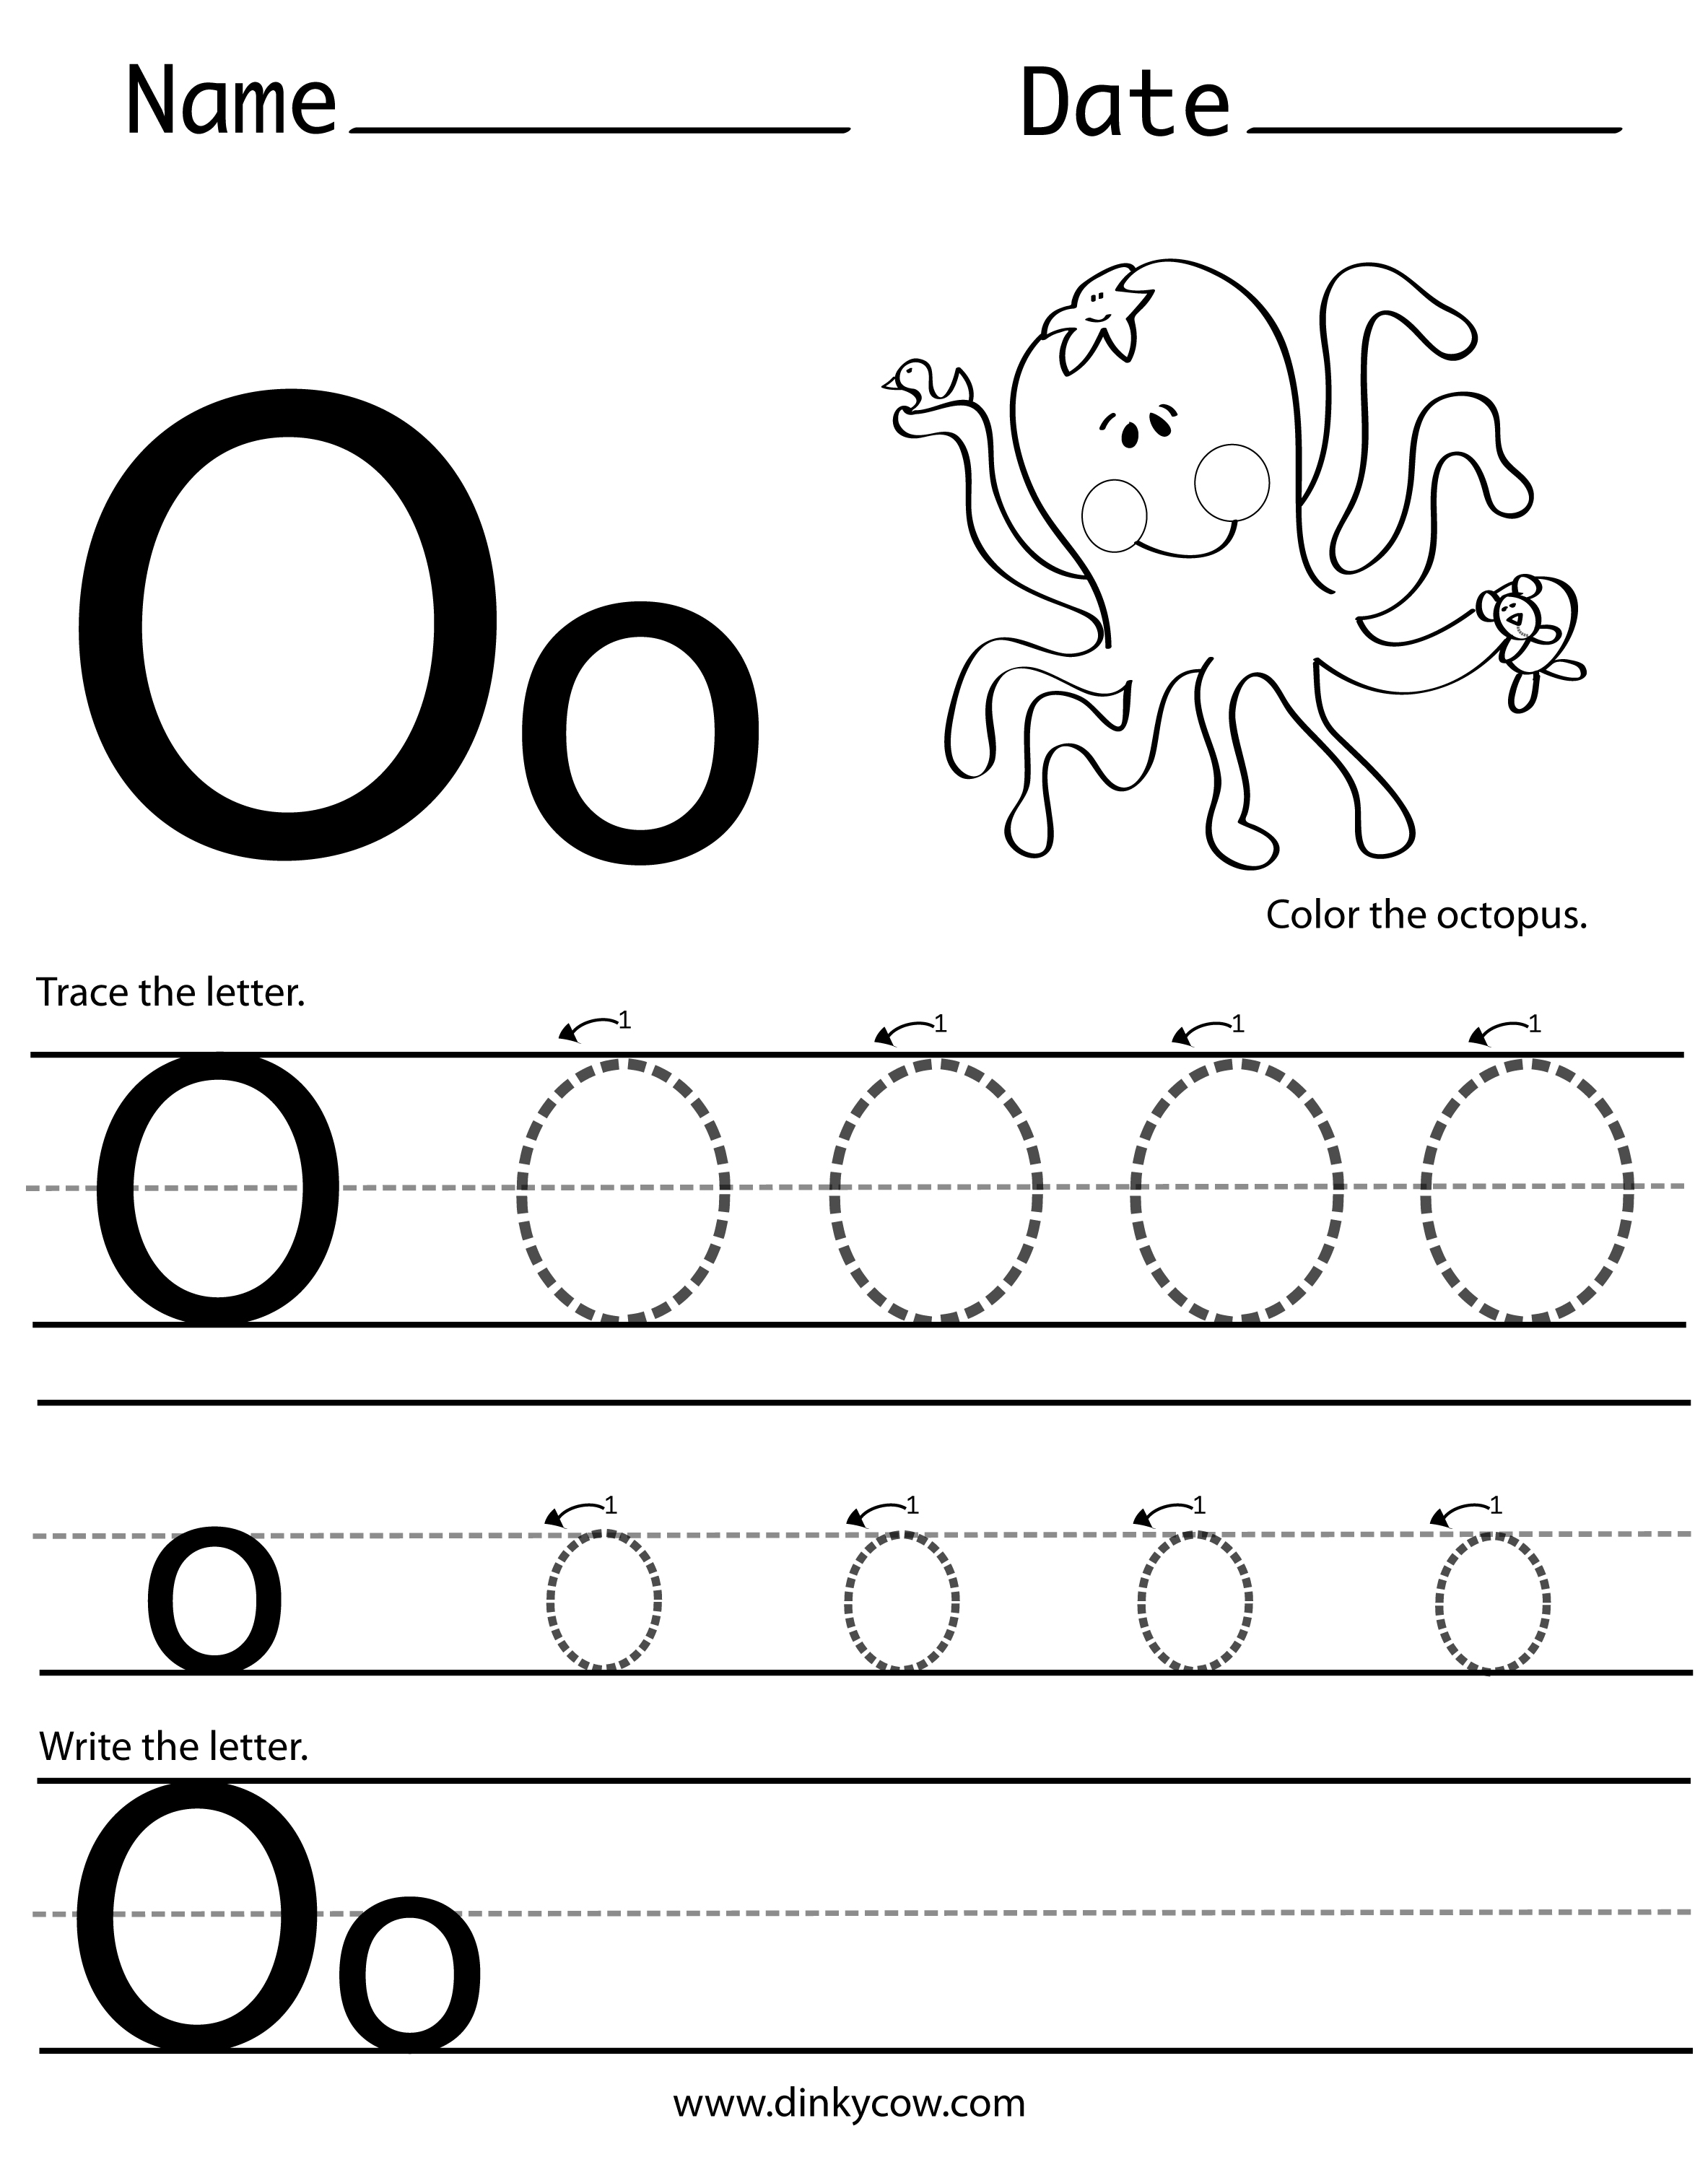 Hiiii Today We Learned And Practiced Our Alphabet